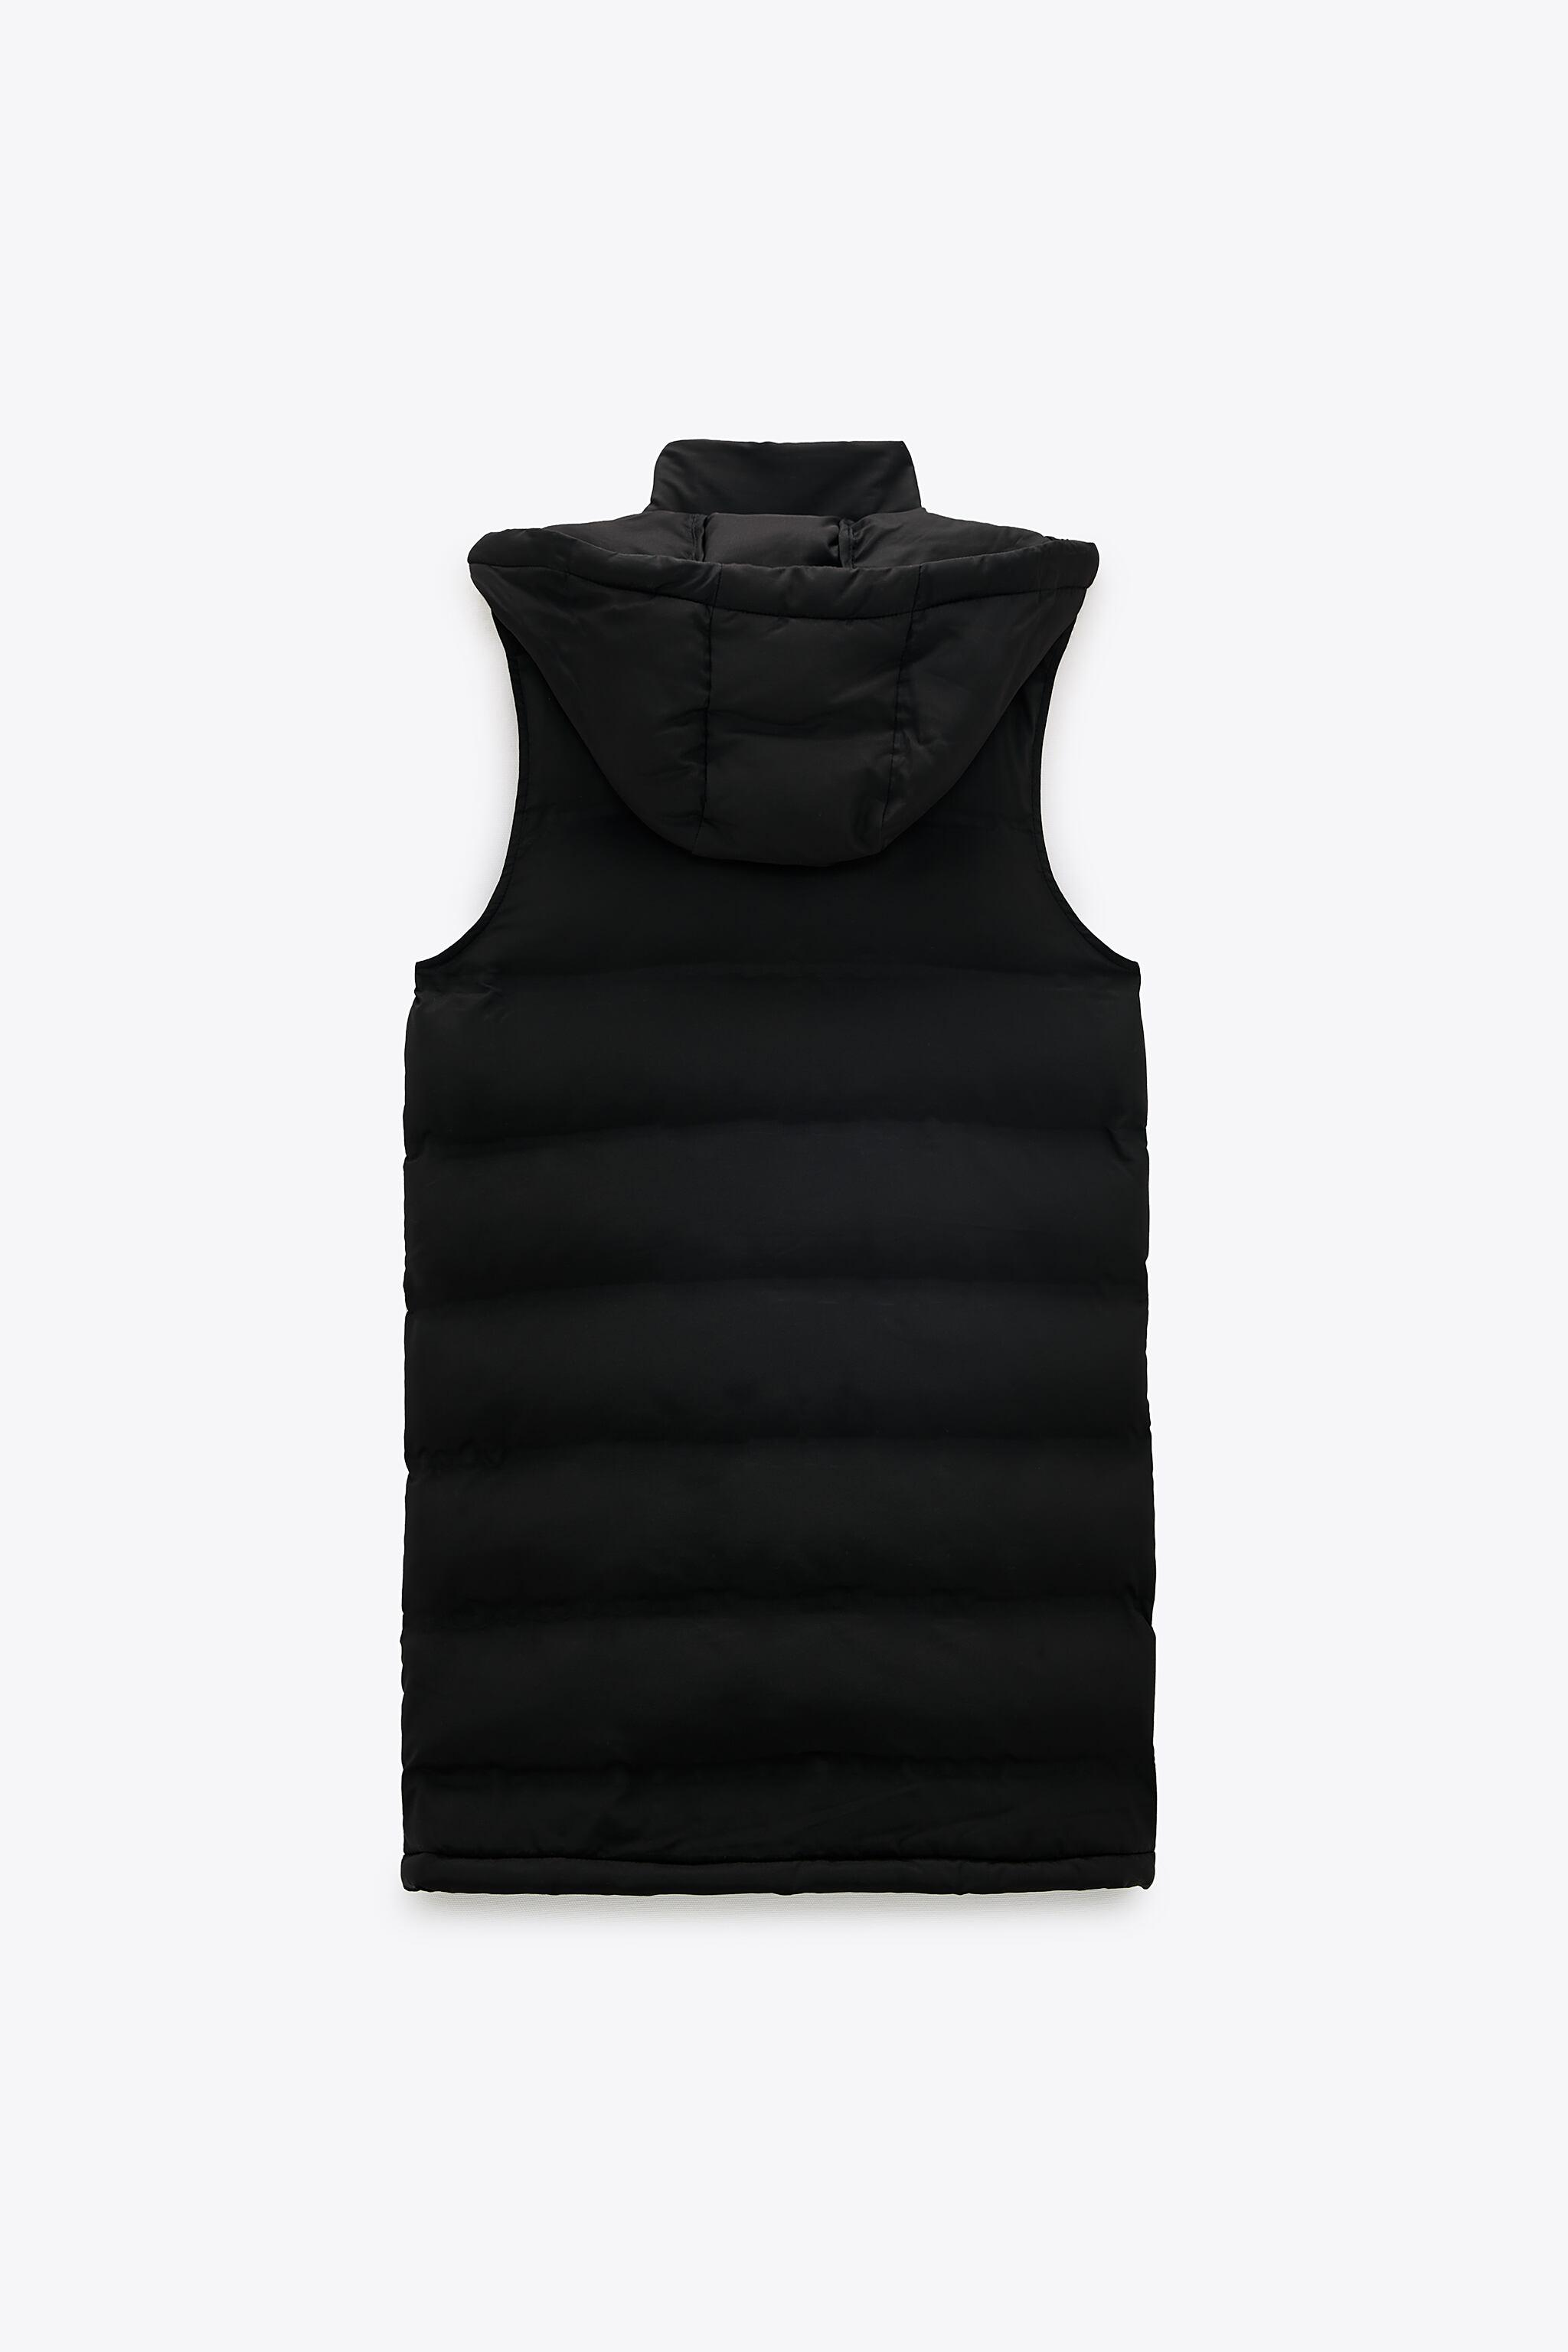 WATER AND WIND PROTECTION PADDED VEST 7